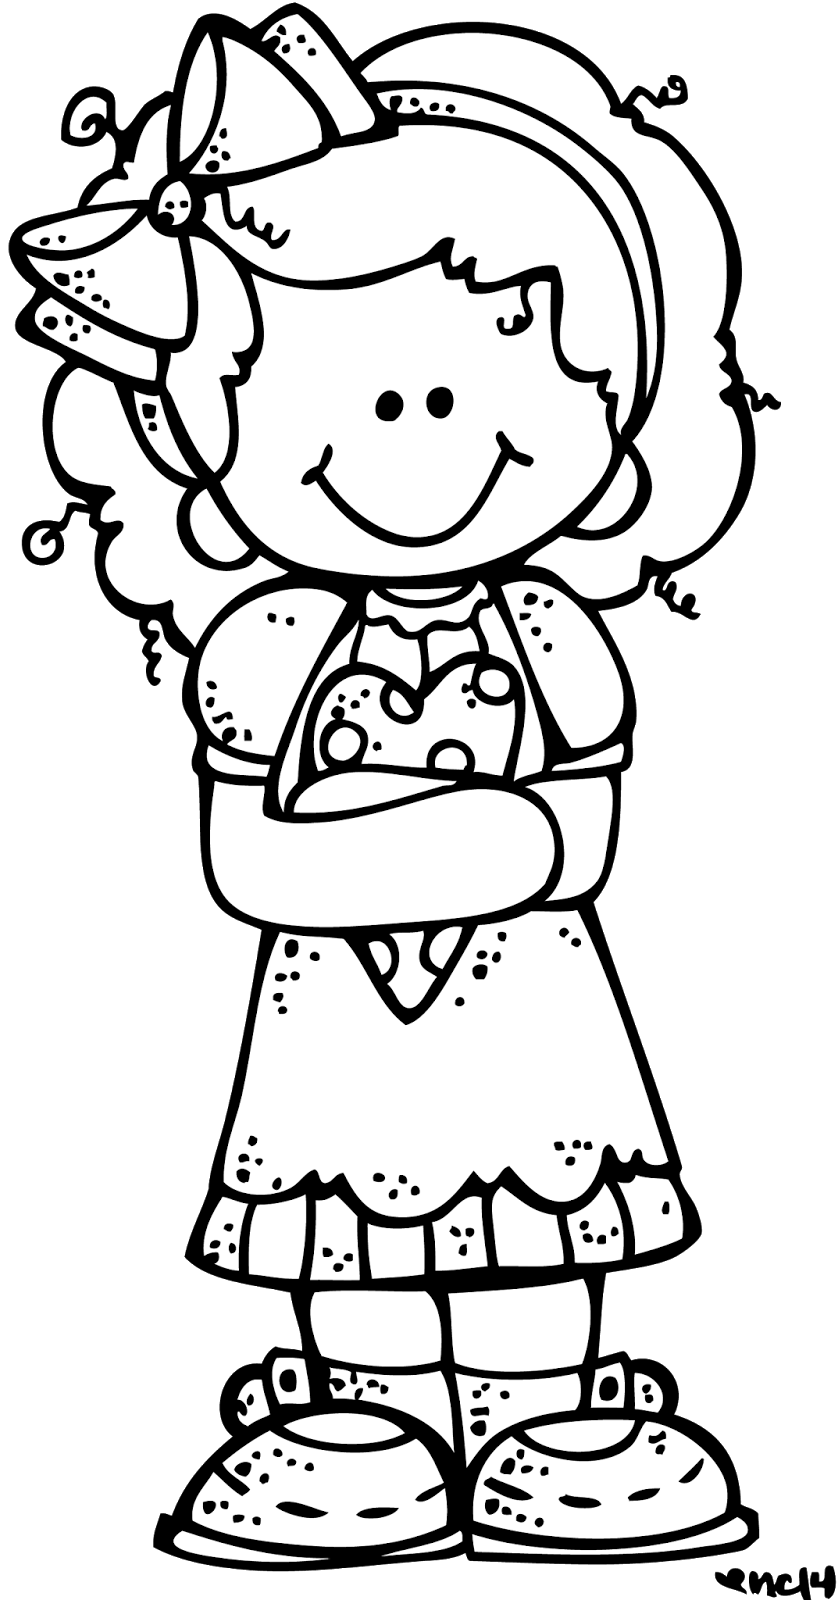 graphic freeuse Lds family clipart black and white. Conference inspirations oct clip